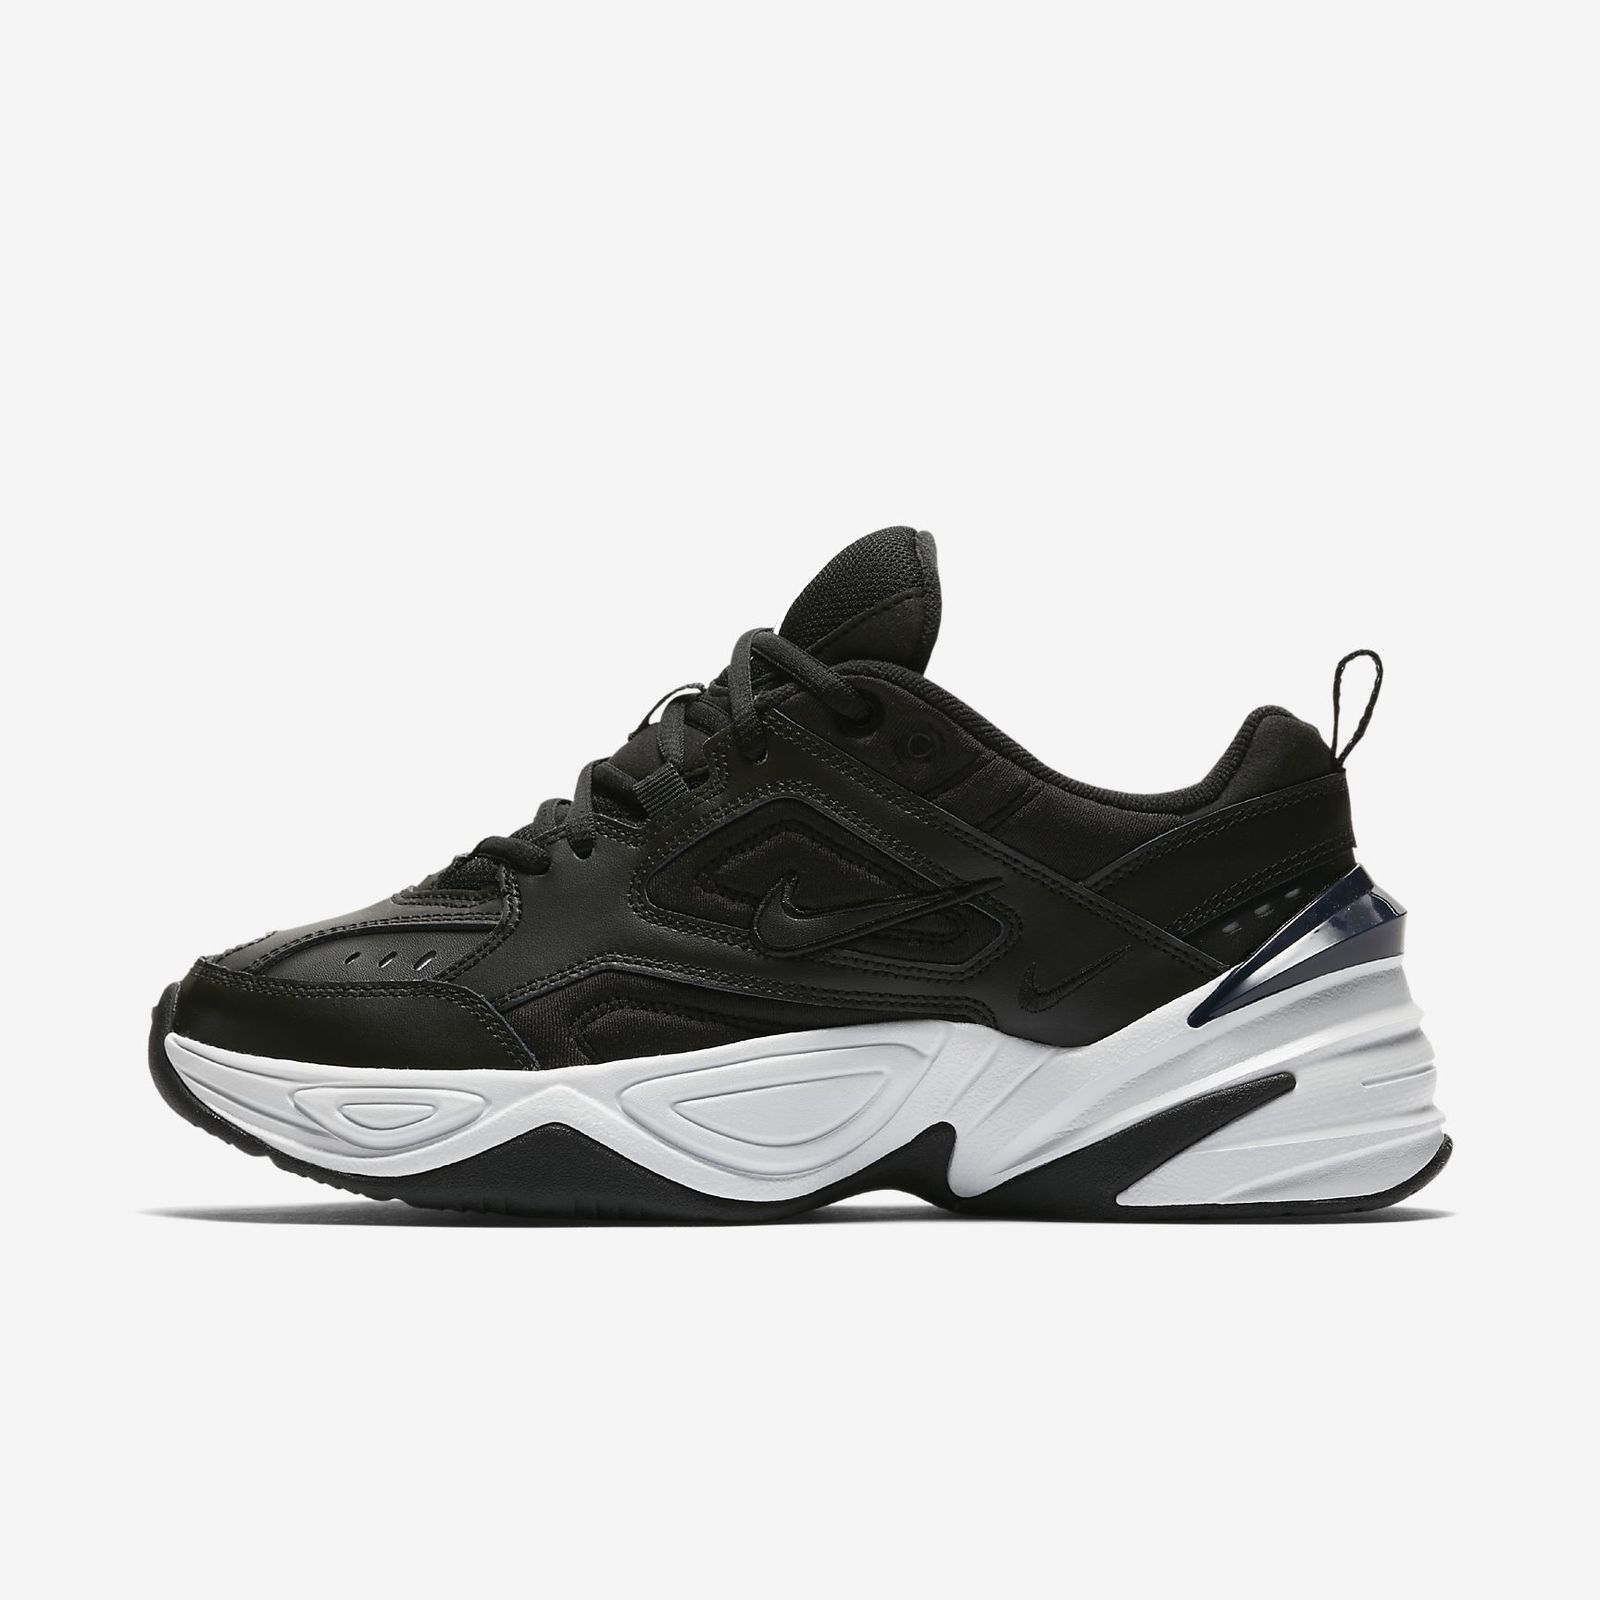 finest selection a534e 05293 Details about NIKE WMNS M2K TEKNO AO3108-003 BLACK BLACK OFF WHITE OBSIDIAN  DAD SHOE S